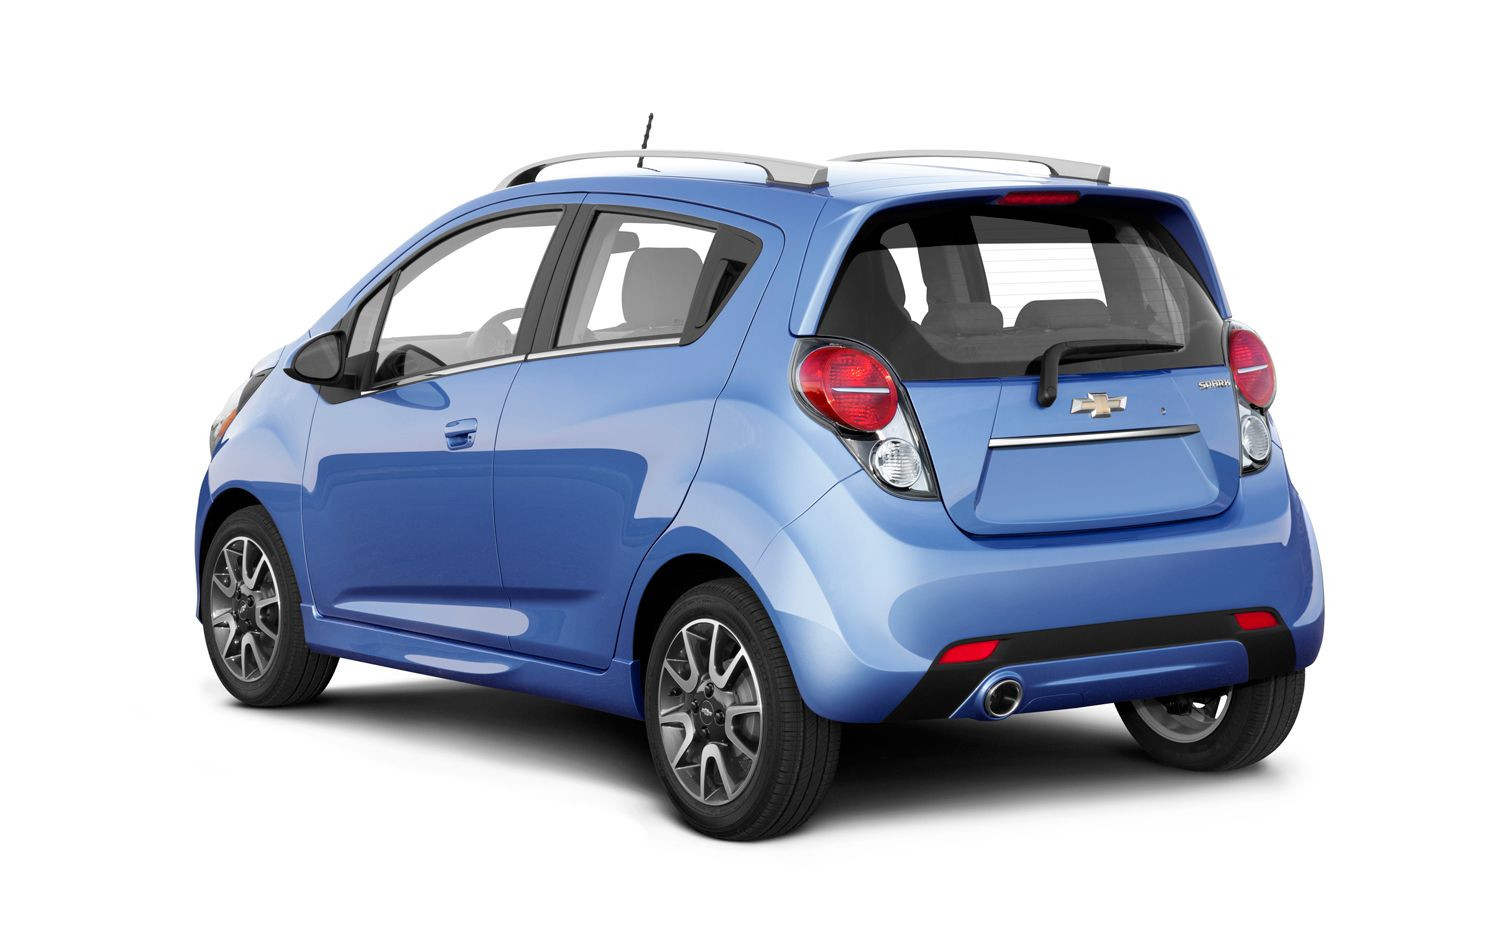 2013 chevrolet spark download 2013 chevrolet spark blue wallpaper hd